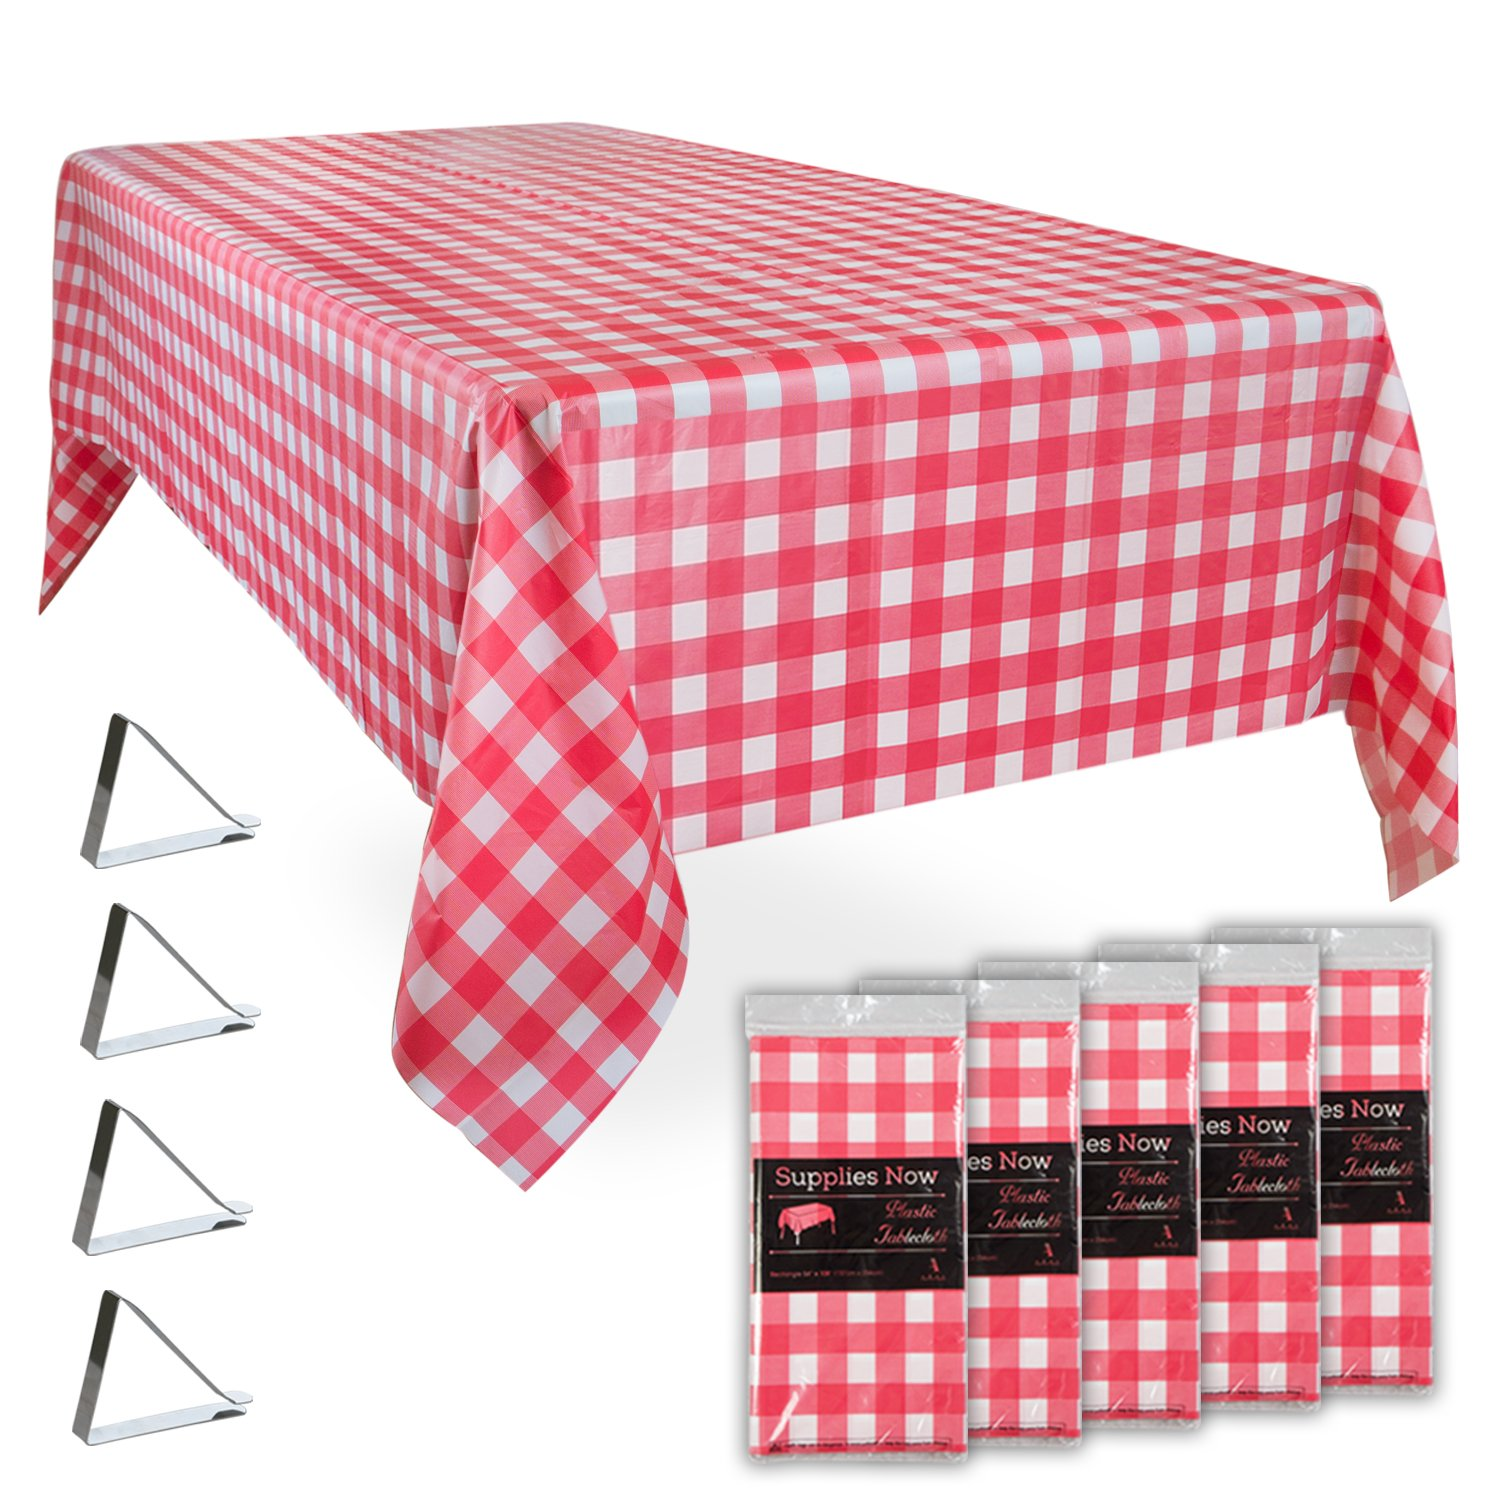 "Red and White Checkered 54"" x 108"" Disposable Plastic Tablecloths Set Includes 5 Gingham Plastic Table Covers and 20 Stainless Steel Clips (25 Pieces) by Supplies Now"